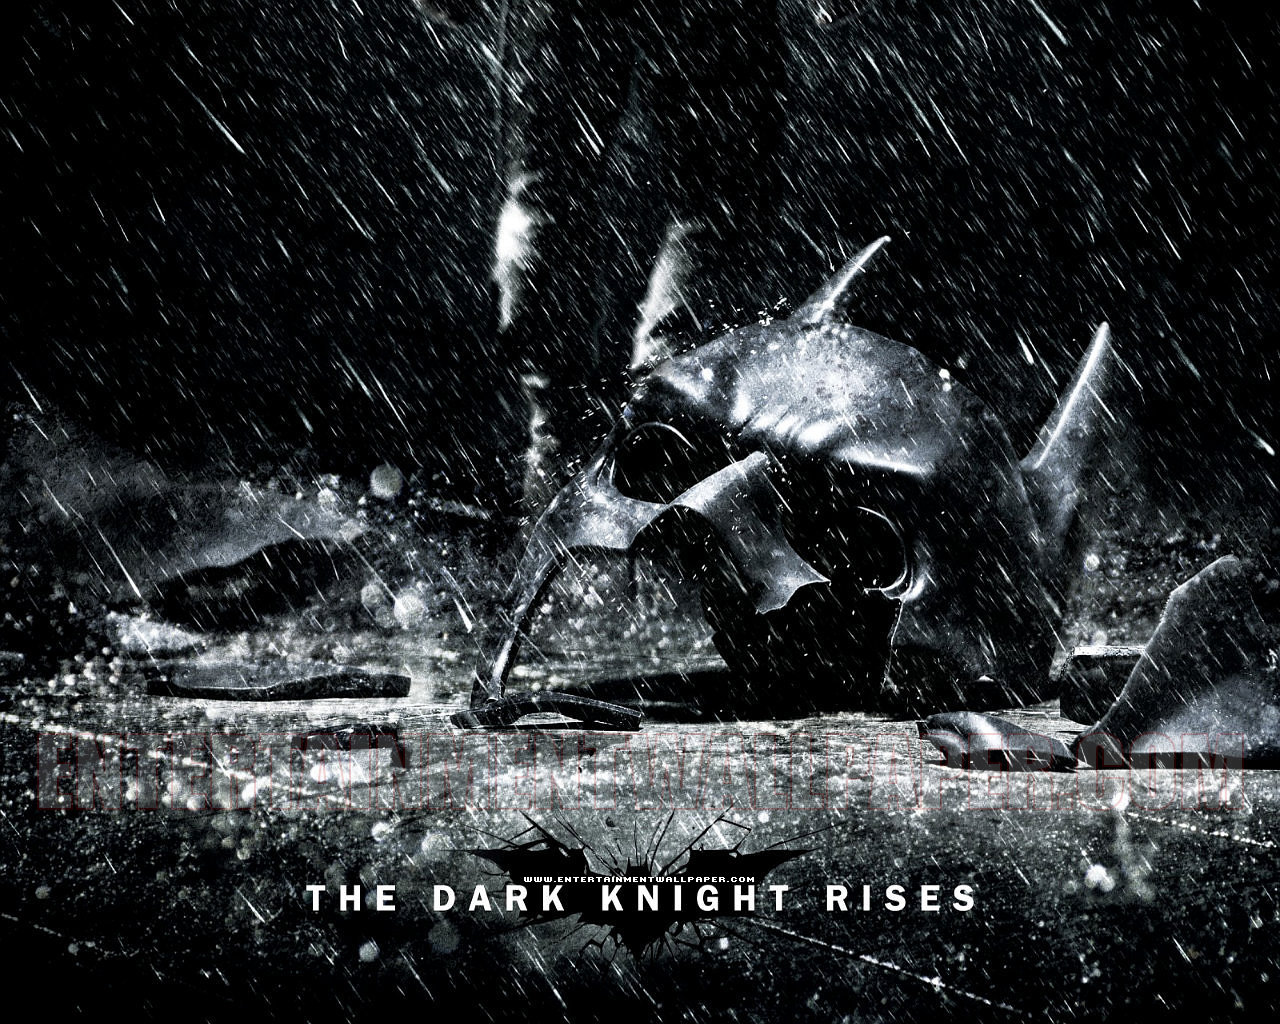 The Dark Knight Rises [2012]  Upcoming Movies Wallpaper 28100585